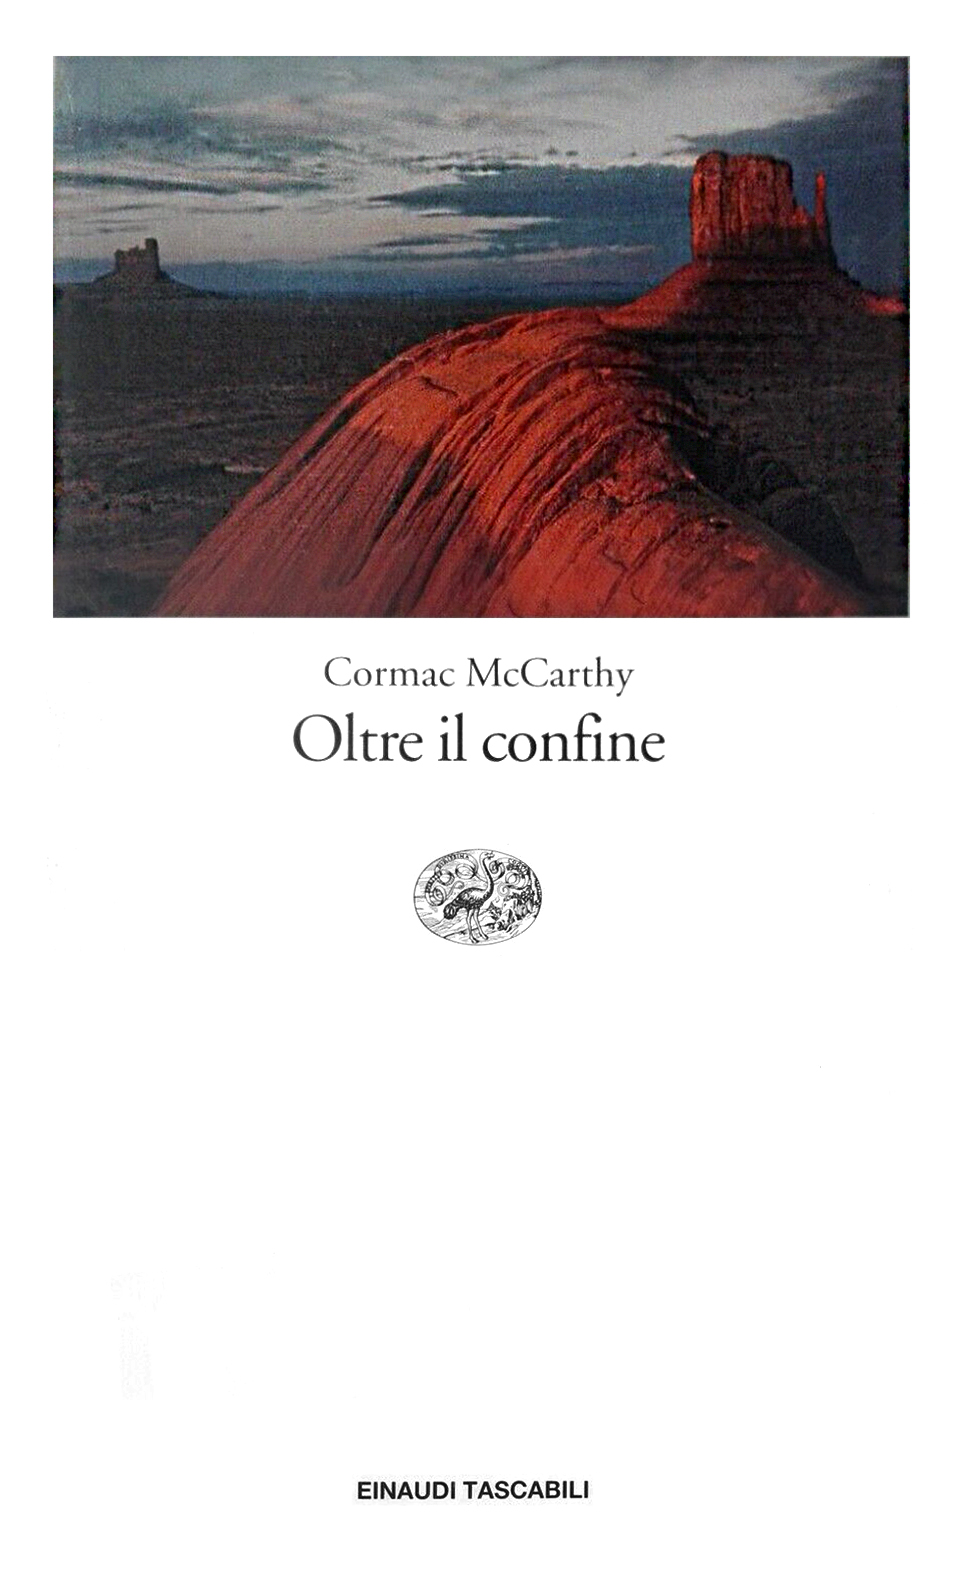 More about Oltre il confine